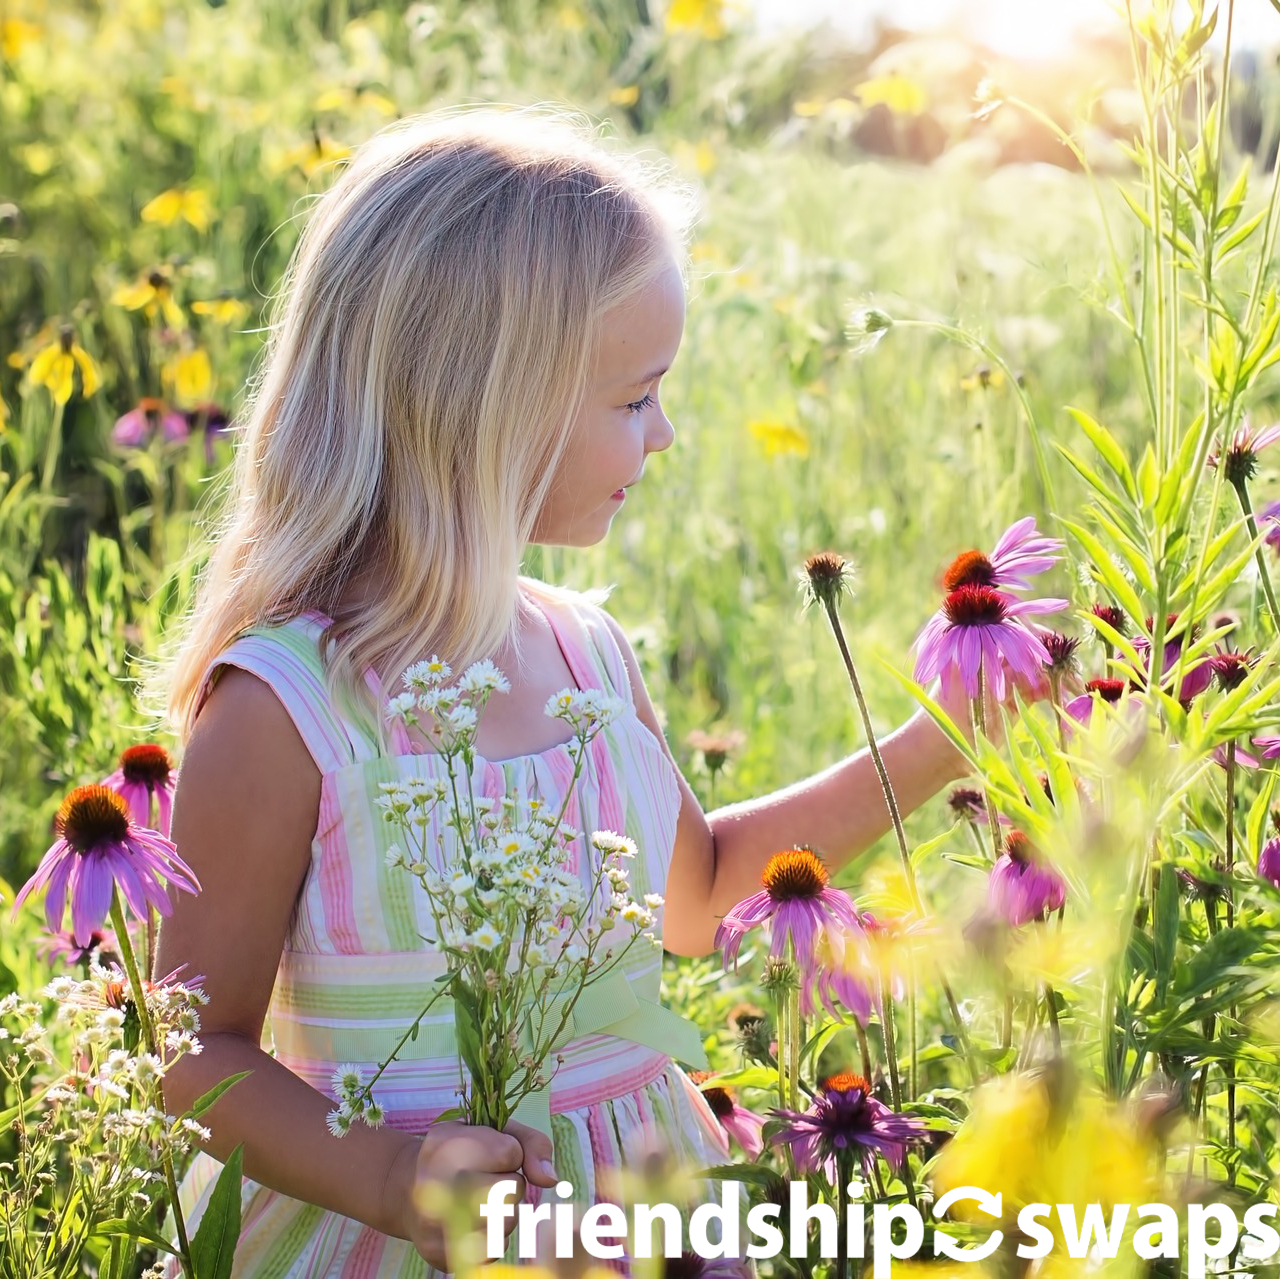 All things Girl Power and Troop Power Swaps. This list of swaps will give you lots of ideas of swaps to make for all your gs swaps occasions. #friendshipswaps #swaps #friends #girlscoutswaps #gsswaps #swapsideas